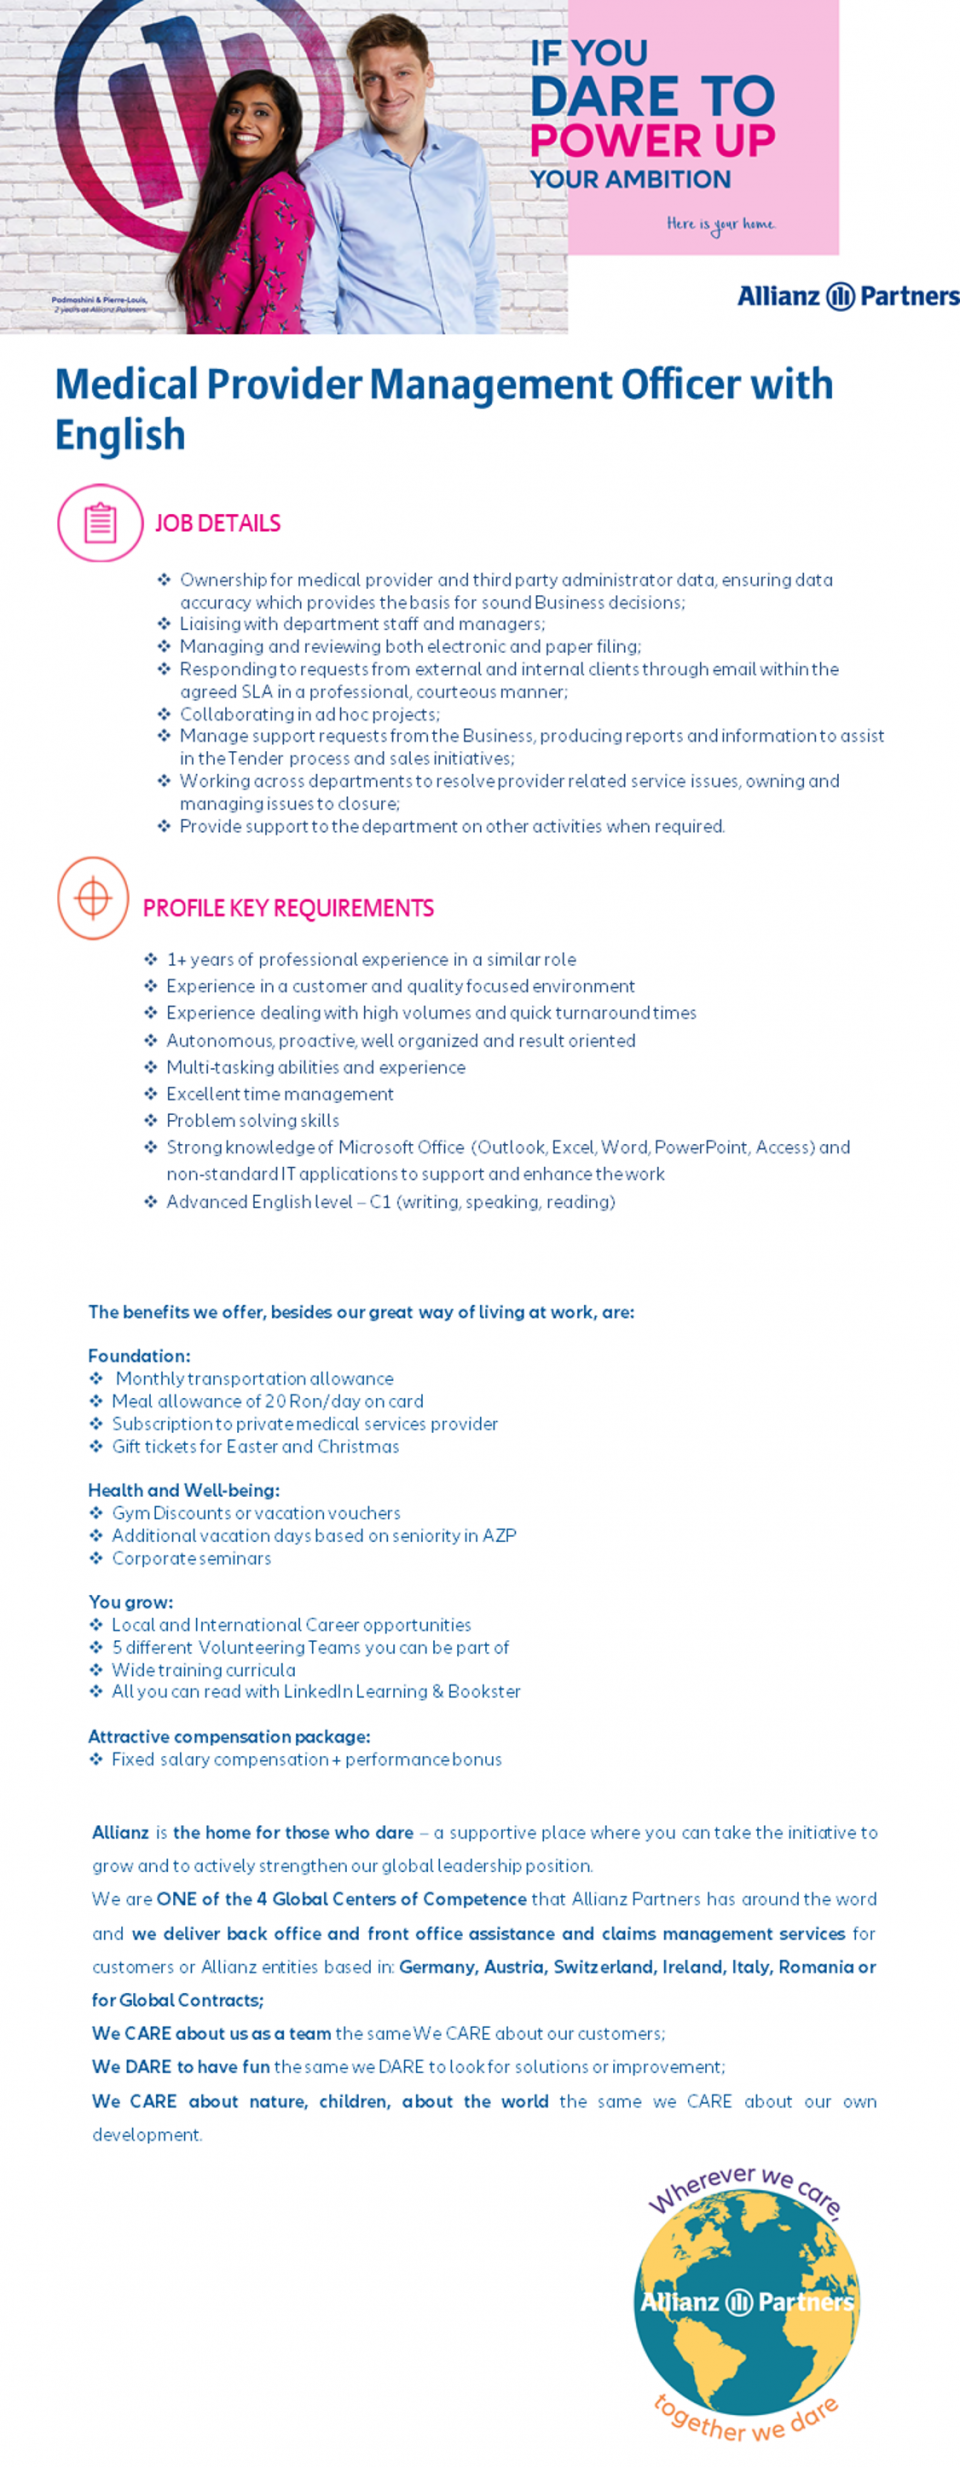 Medical Provider Management Officer with English